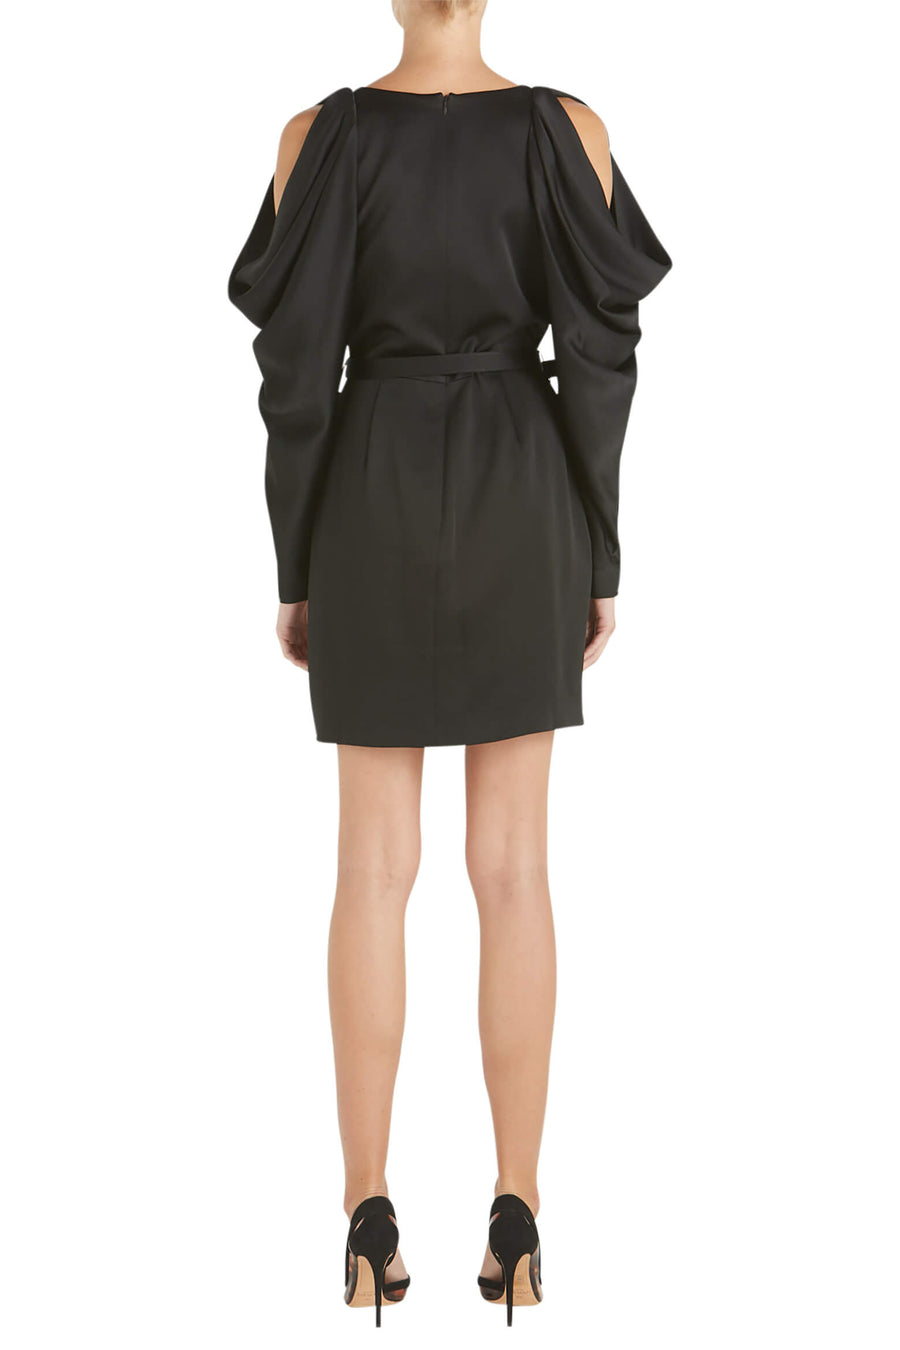 Jonathan Simkhai Classic Woven Plunge Mini Dress in Black from The New Trend